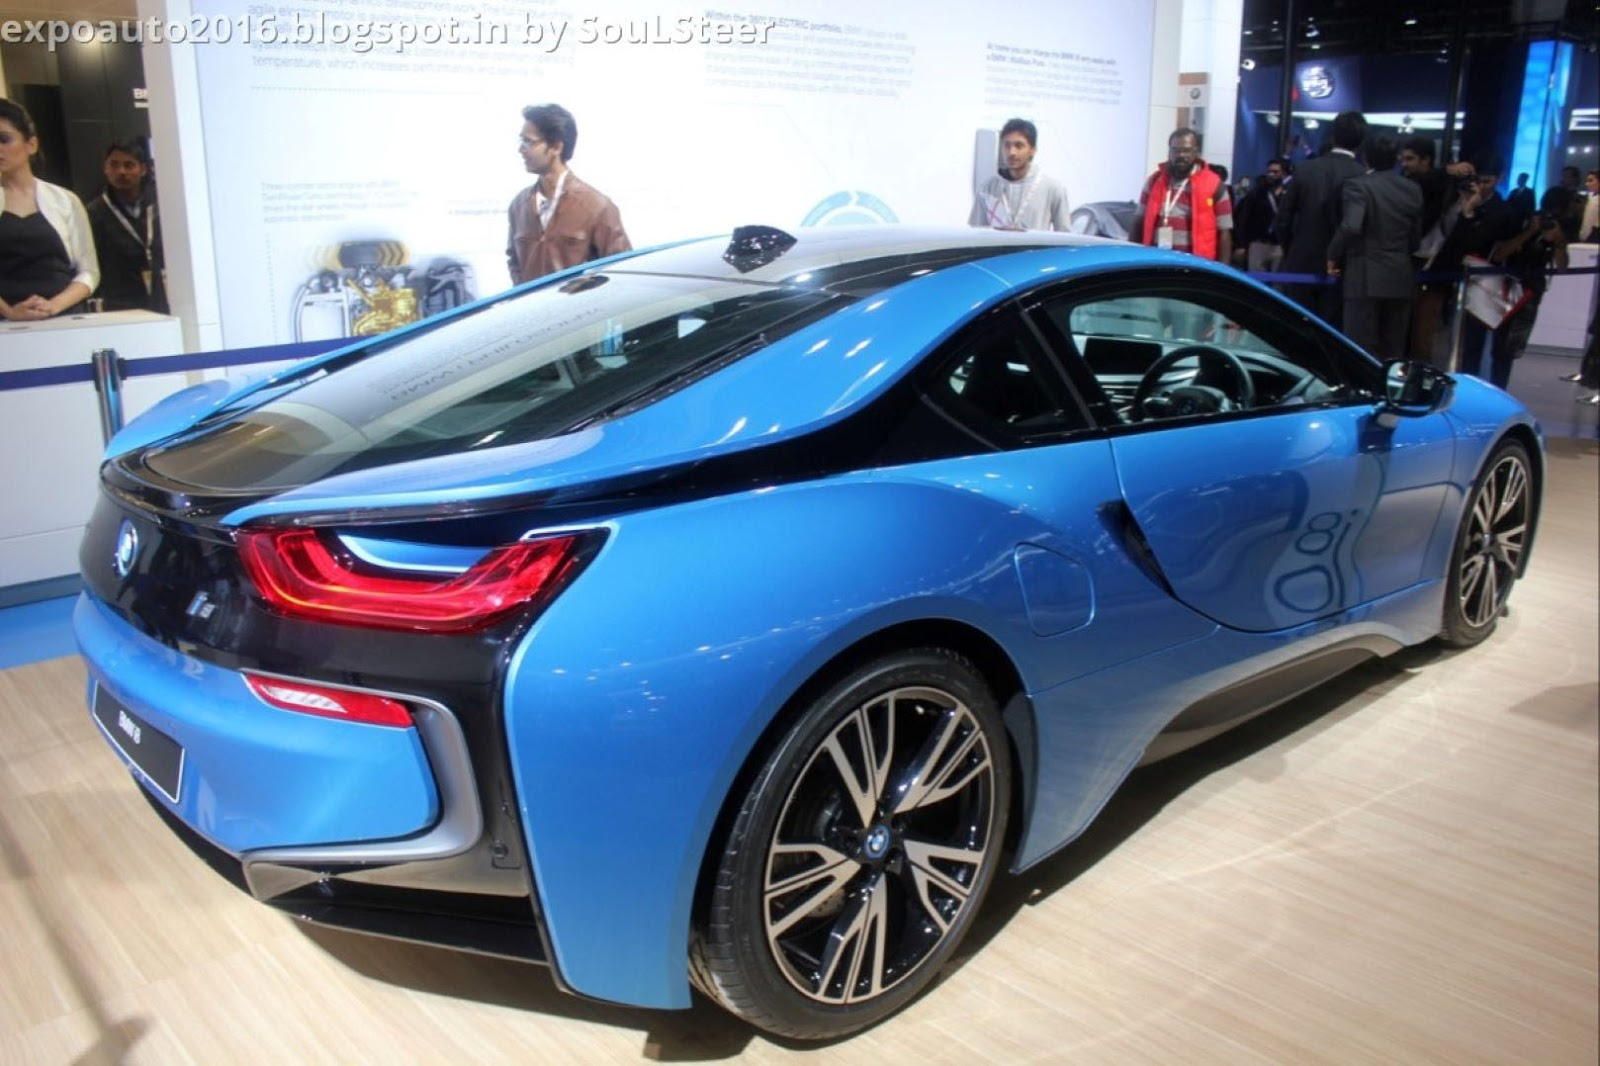 Auto Expo 2016 By SouLSteer Blue Plug In Hybrid Sports Car BMW I8 EDrive Displayed At